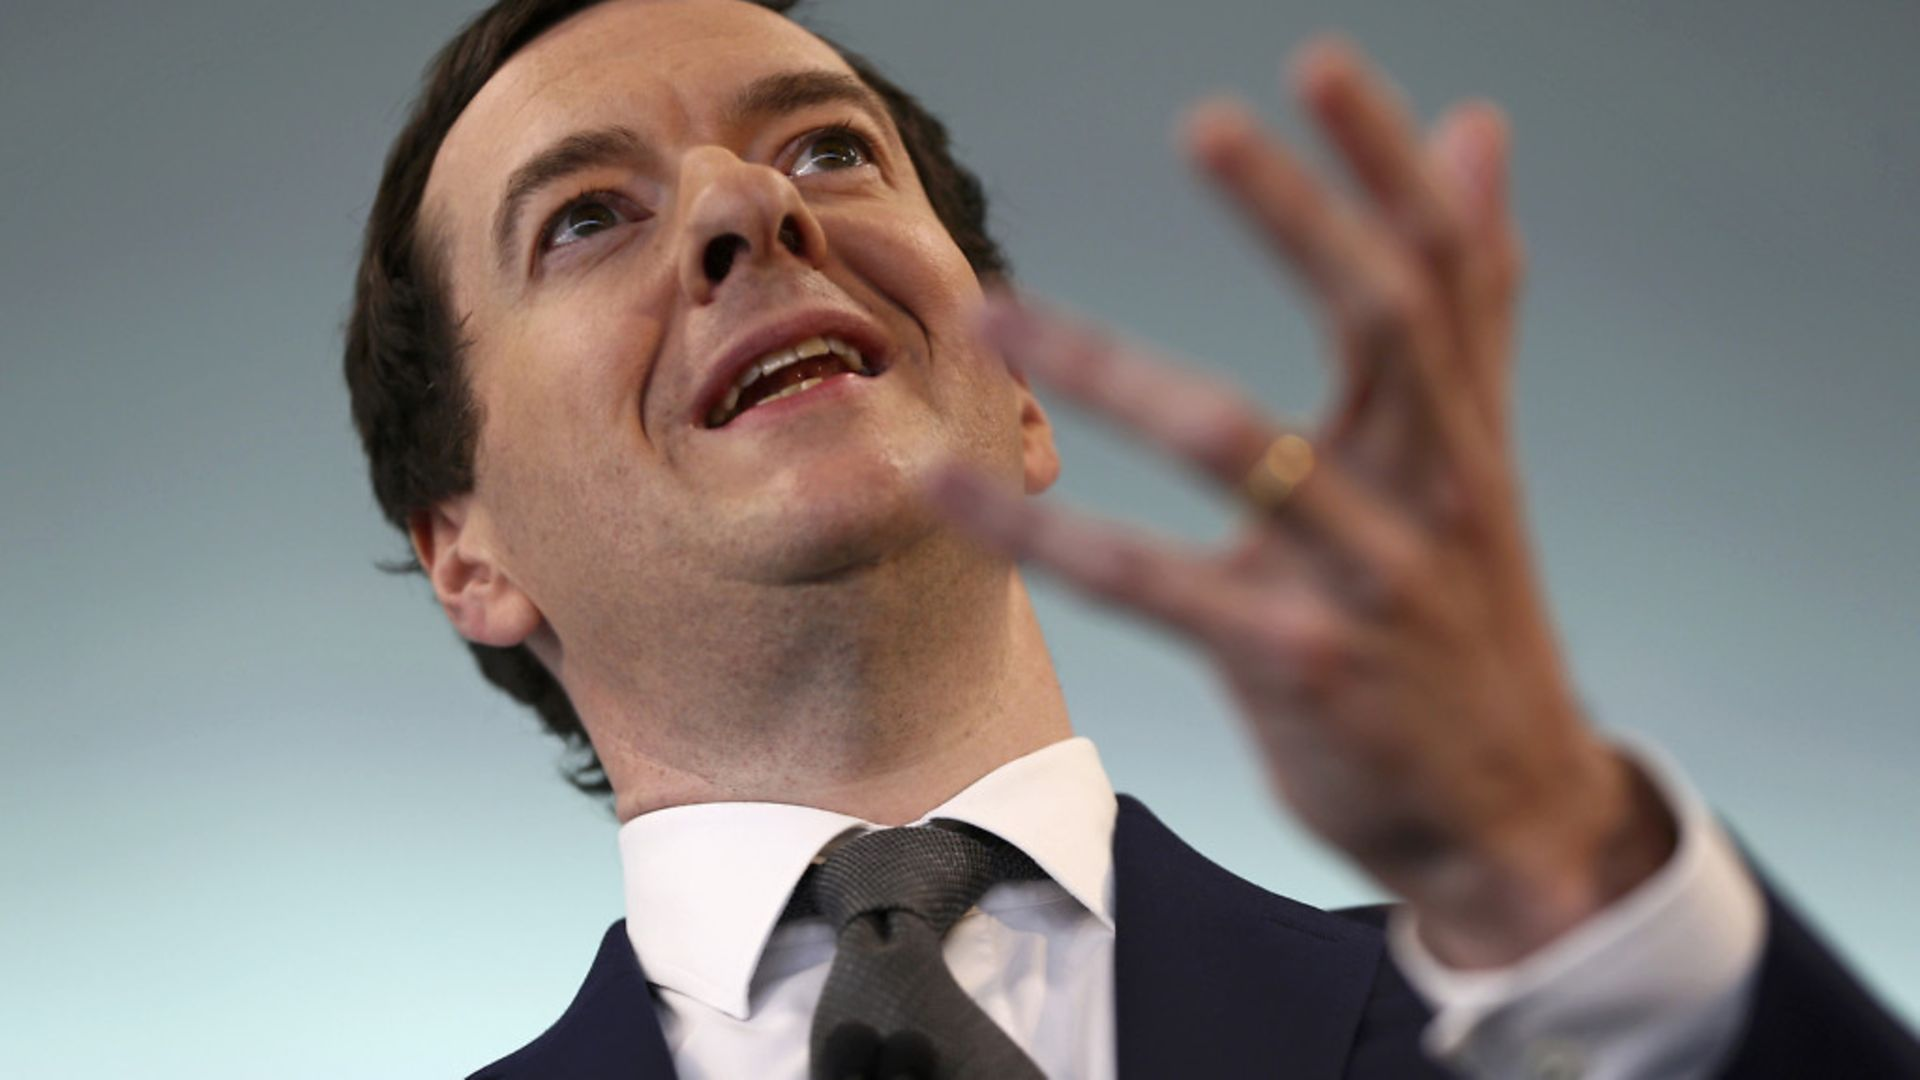 Chancellor George Osborne speaks at The Times CEO summit in London - Credit: PA